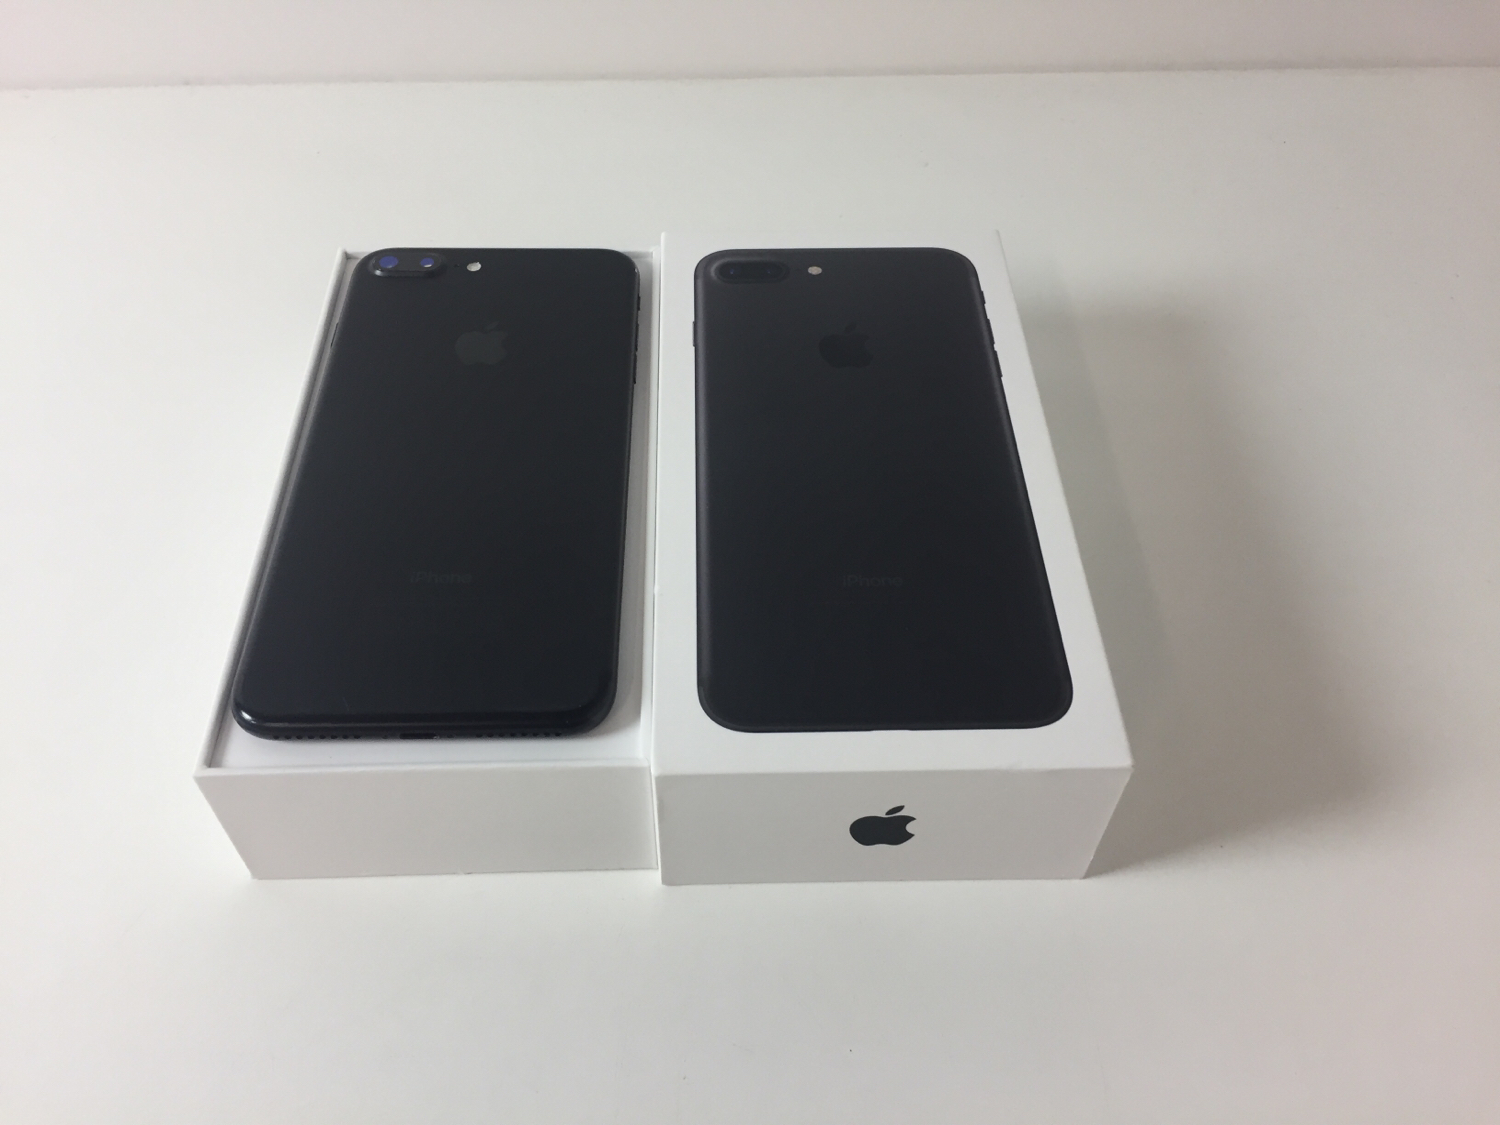 iPhone 7 Plus 256GB, 256GB, Black, imagen 2